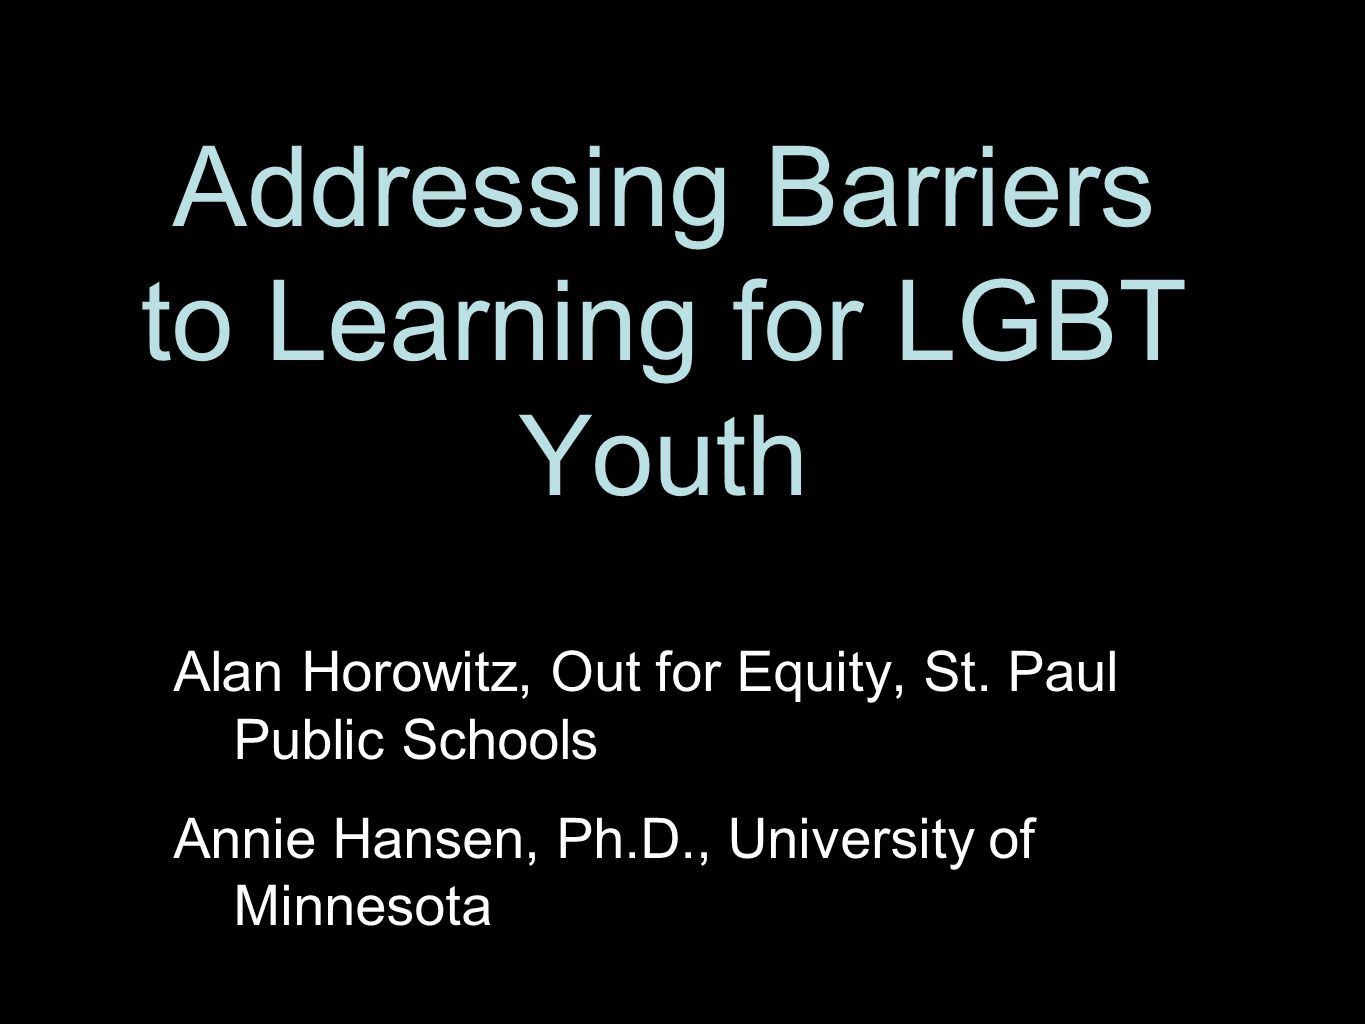 Addressing Barriers to Learning for LGBT Youth Alan Horowitz, Out for Equity, St. Paul Public Schools Annie Hansen, Ph.D., University of Minnesota